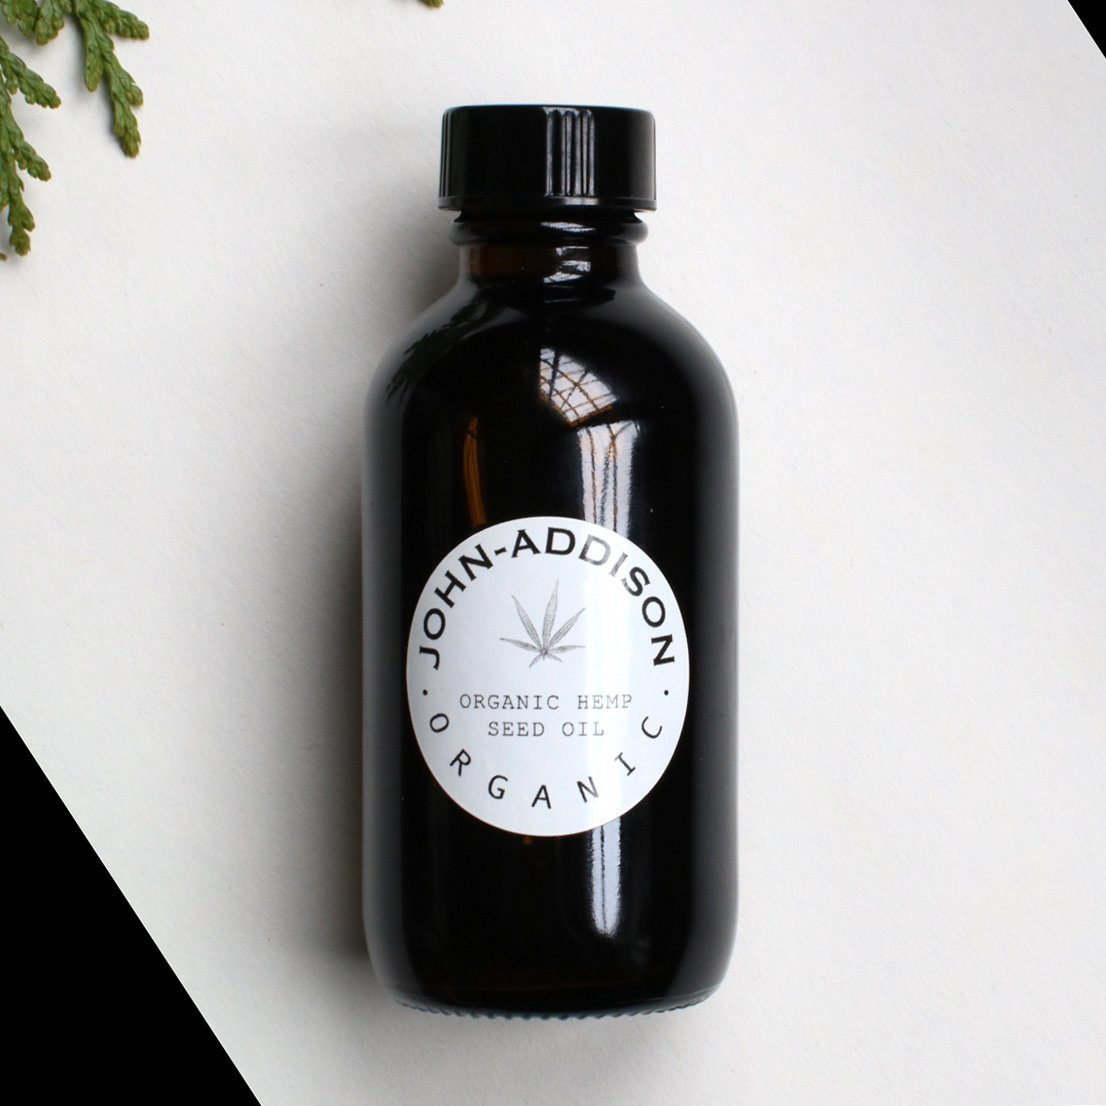 ORGANIC HEMP SEED OIL by JOHN ADDISON - Cold Press - Carrier Oil - For Face Body Hair - Treats Stretch Marks Dry Irritated or Ashy Looking Skin - Hydrates Moisturizes Softens Smooths Soothes - Add Essential Oils - Amber Glass Bottle With Dropper - 100ml